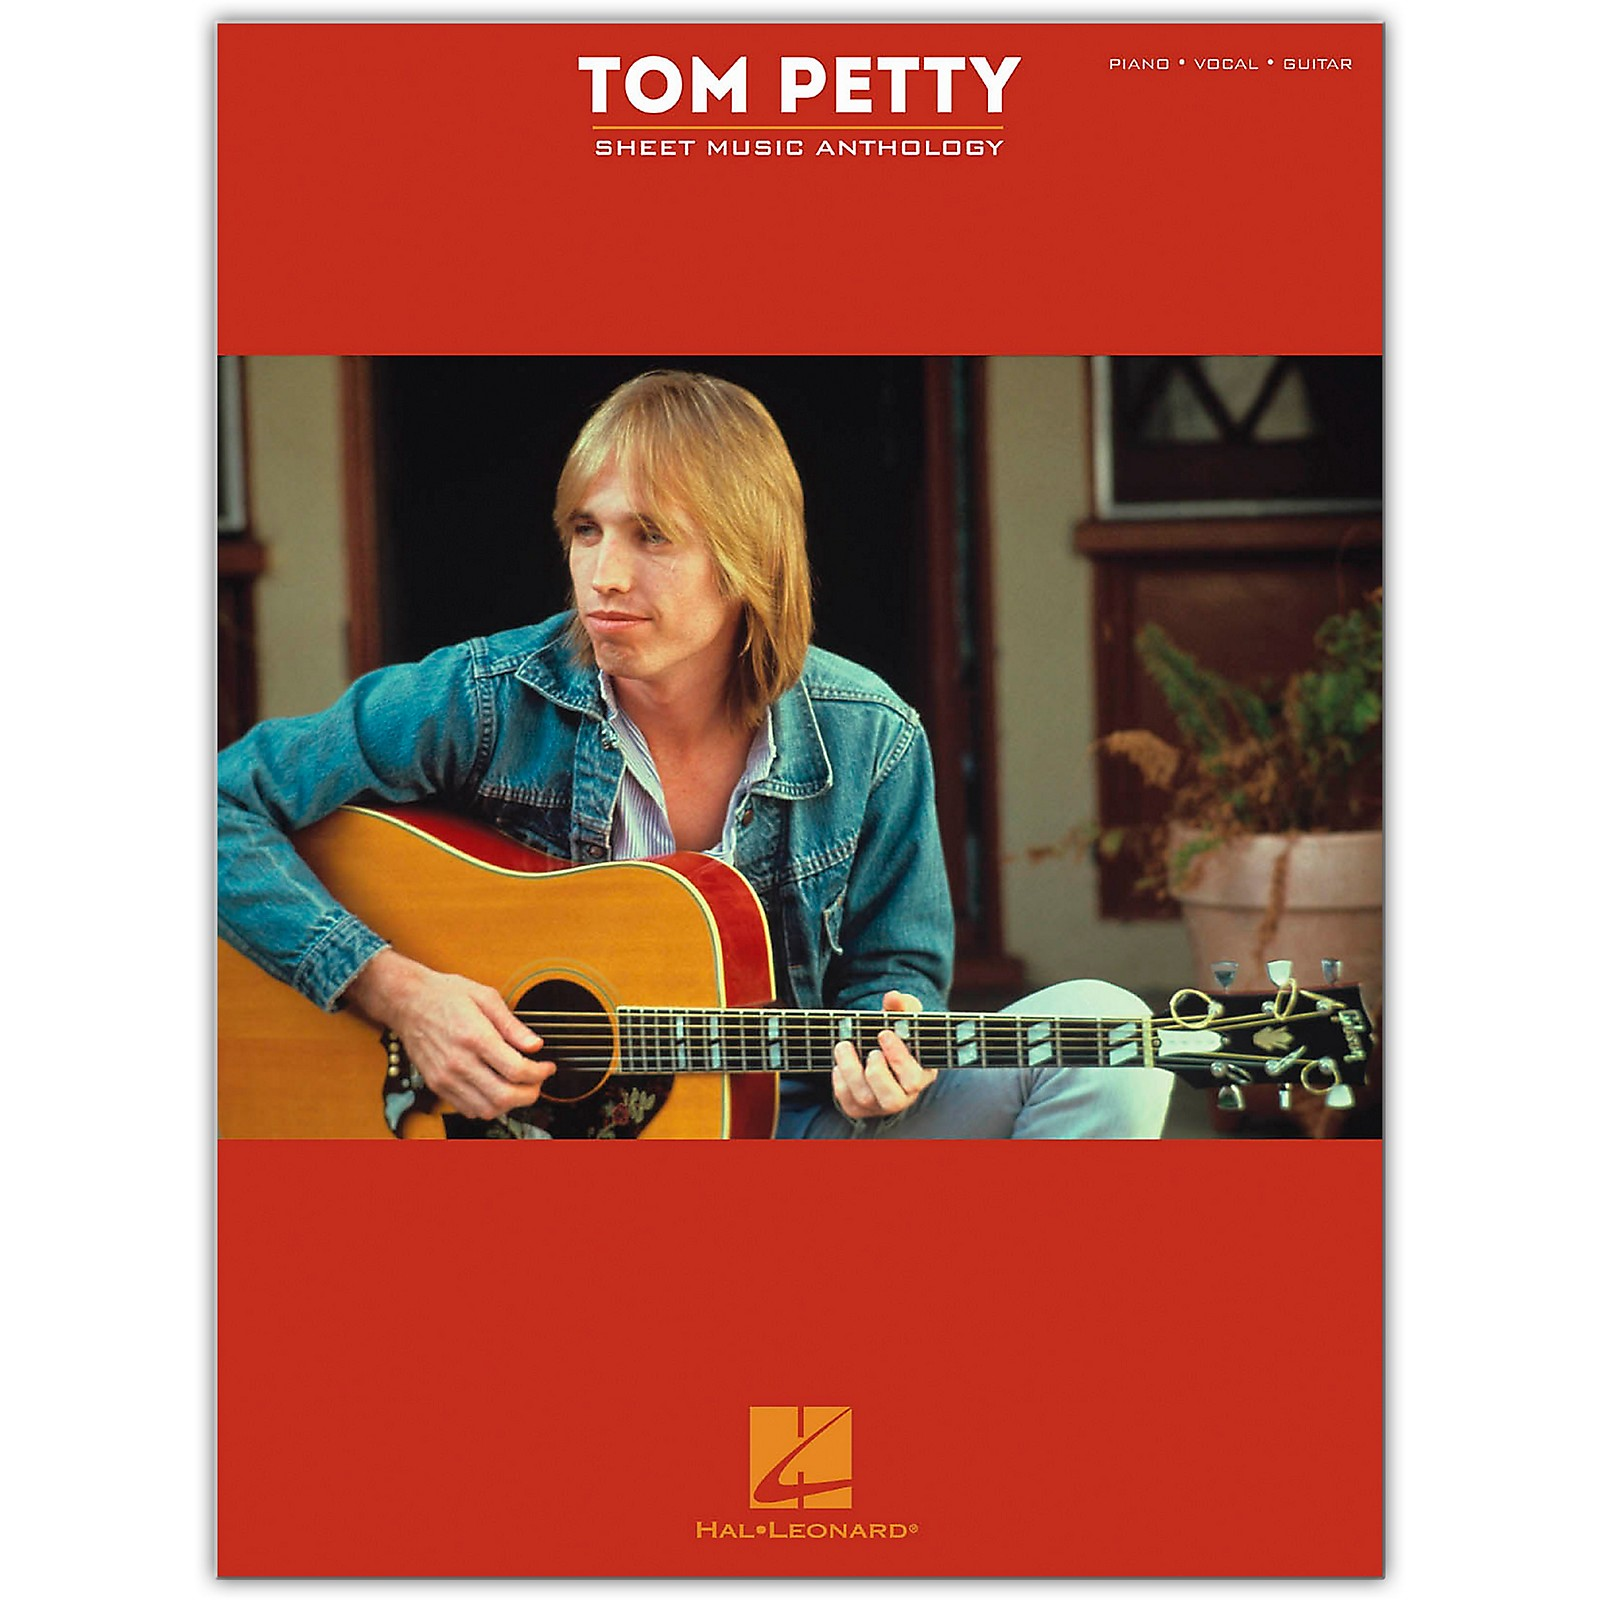 Hal Leonard Tom Petty Sheet Music Anthology - Piano/Vocal/Guitar Artist Songbook